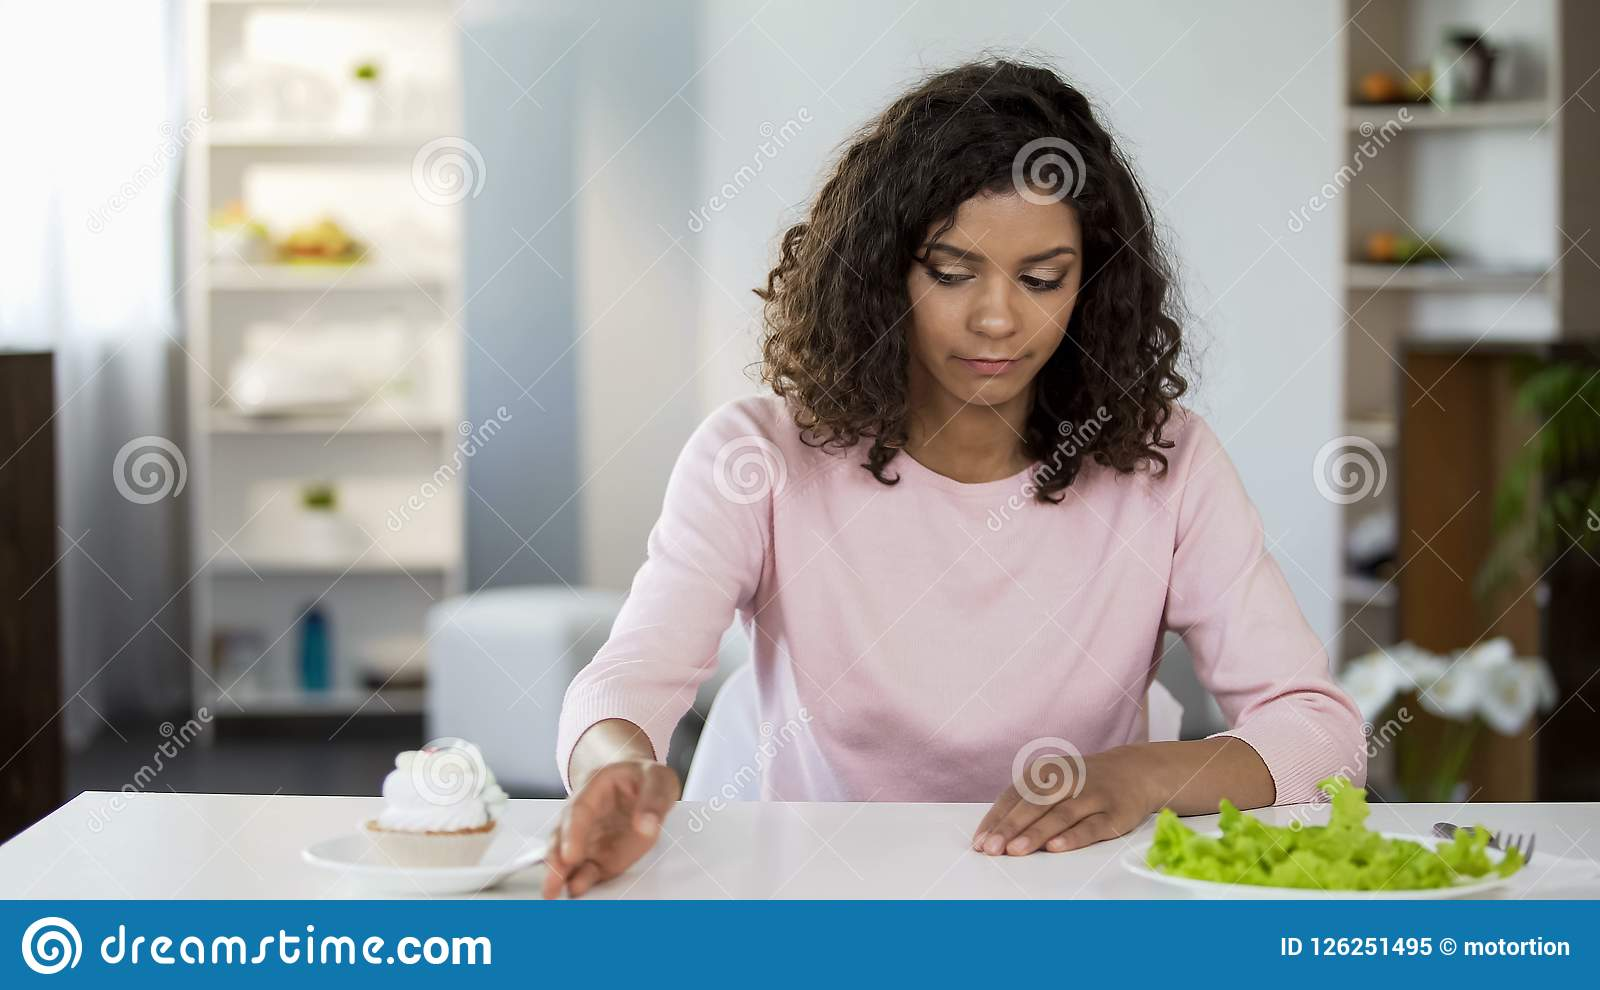 Attractive woman sadly choosing salad over cake, weight control, diet nutrition